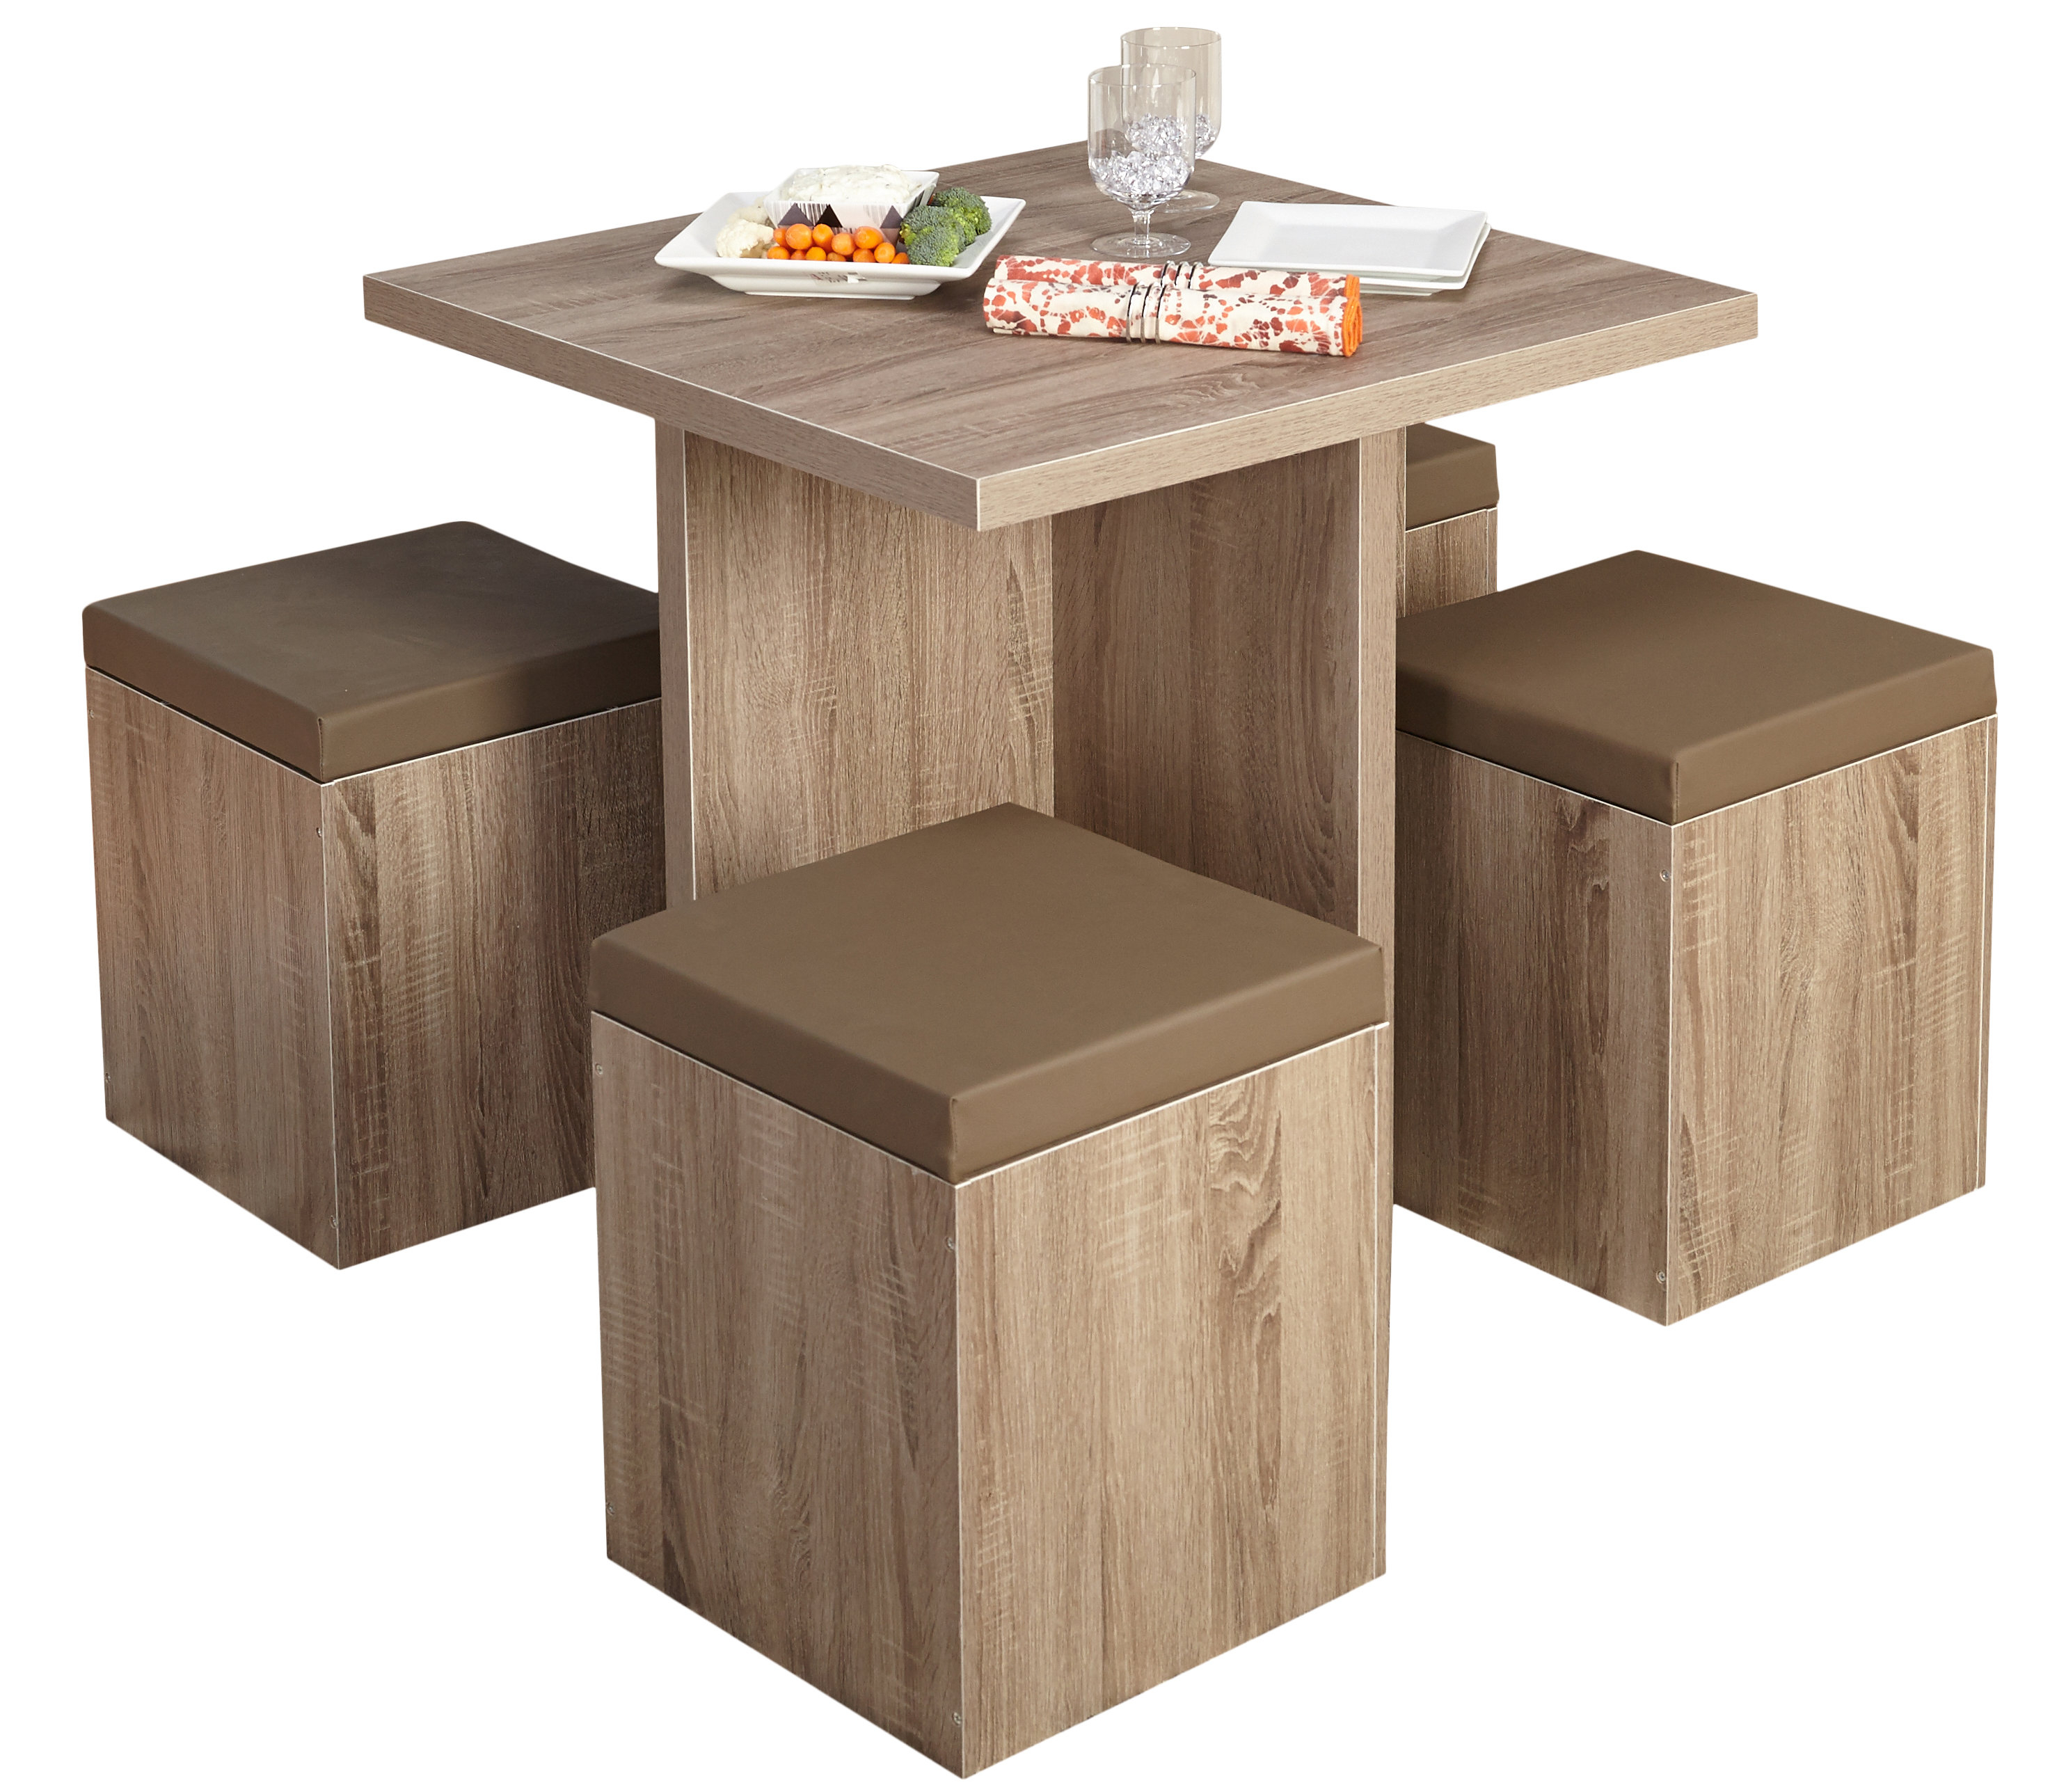 Badillo 5 Piece Dining Set Intended For Most Recently Released Partin 3 Piece Dining Sets (View 4 of 20)